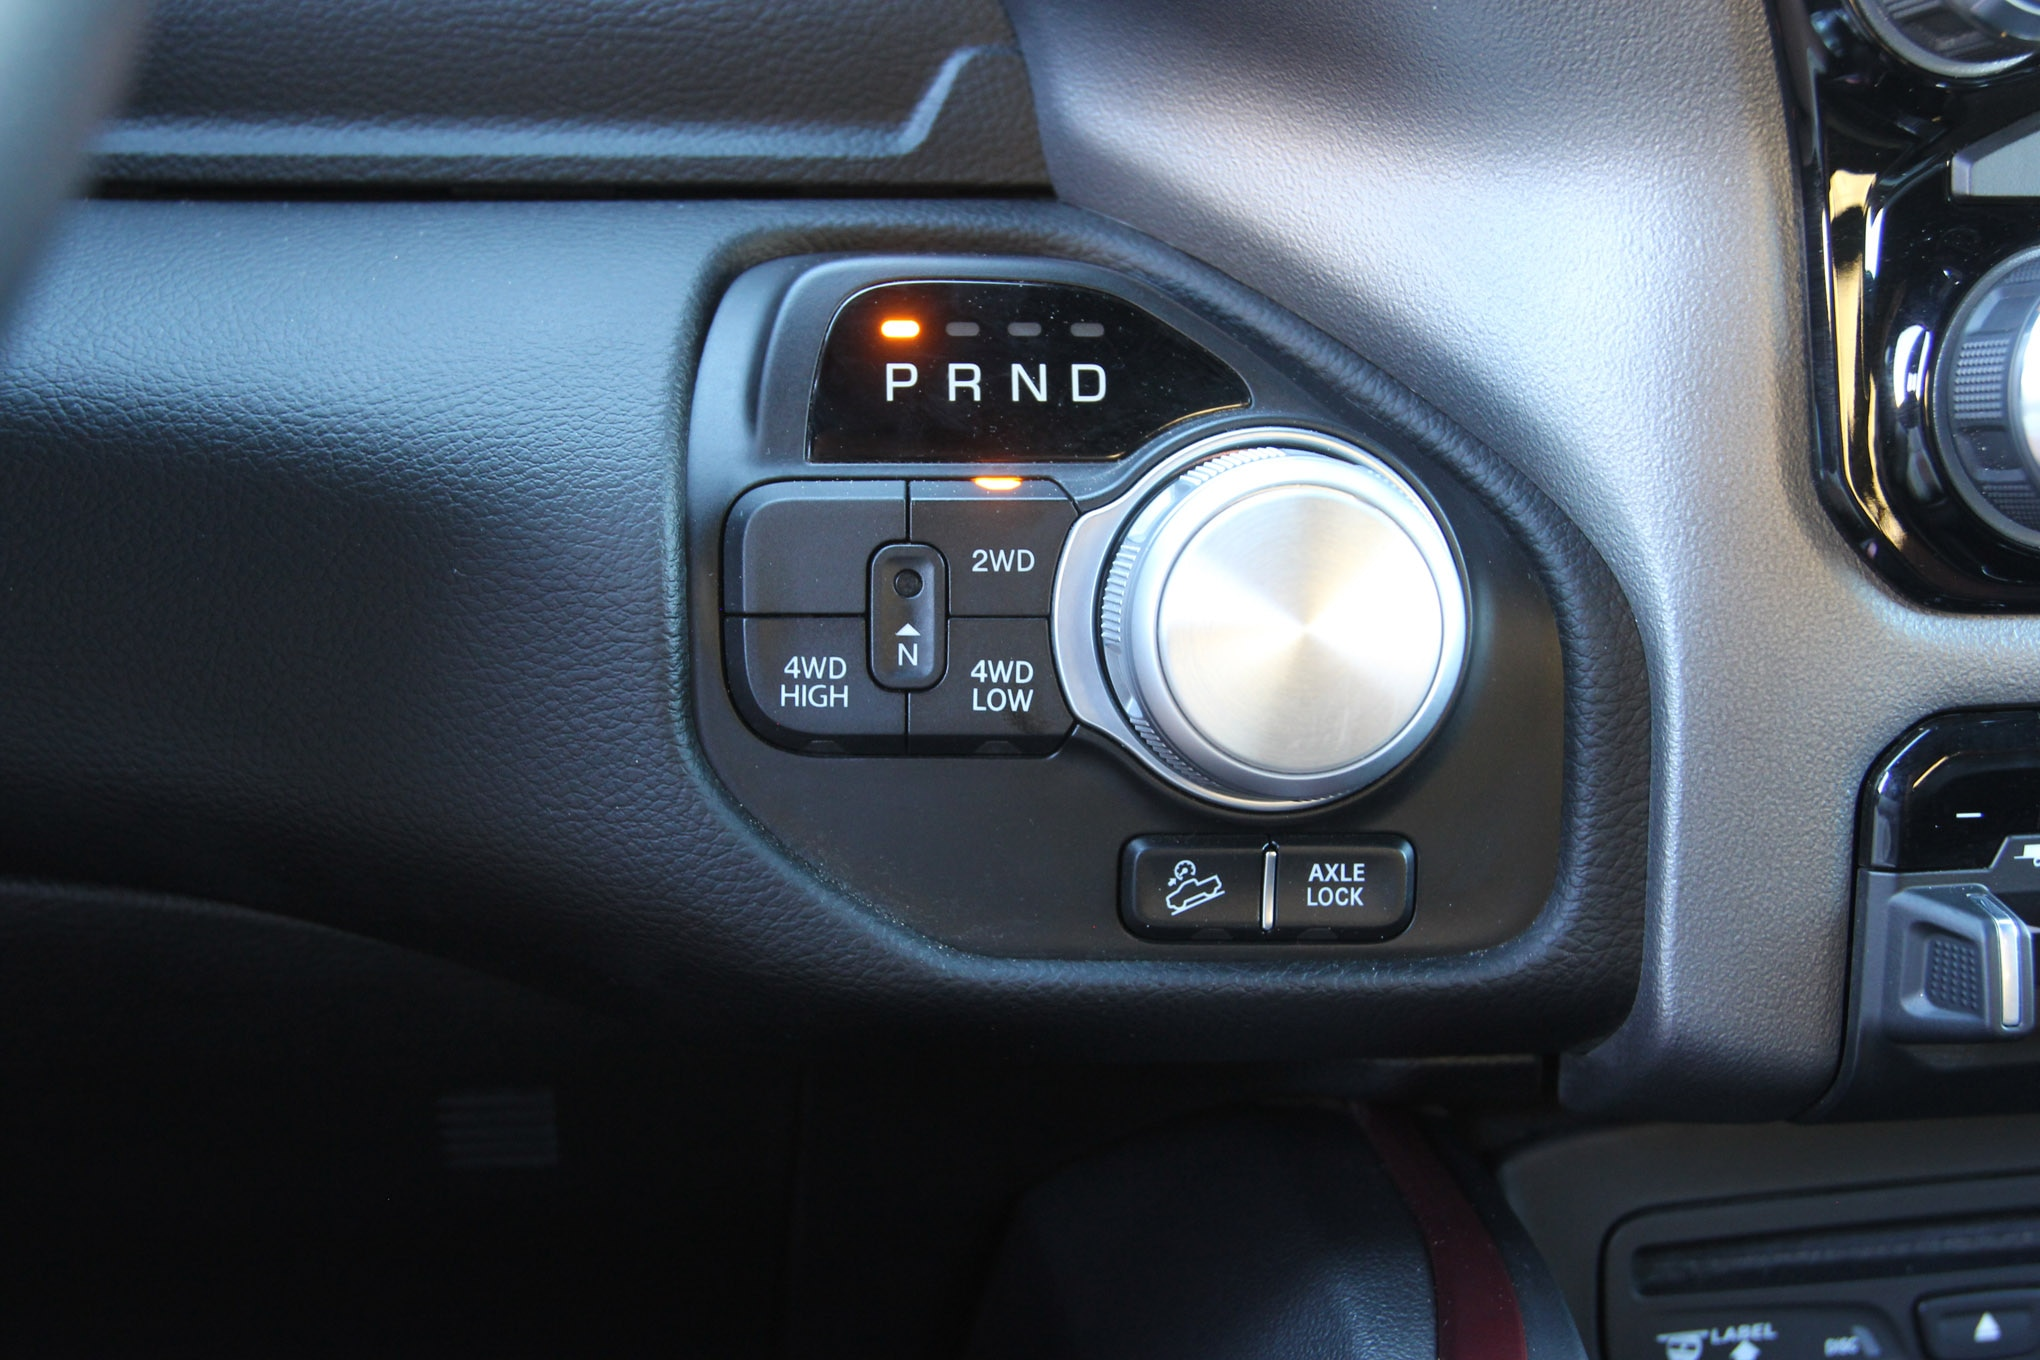 Like the GM trucks, the Ram Rebel uses buttons to select the transfer case mode, but they are on the right side of the steering wheel. Don't get us started on the rotary dial for the transmission shifter.